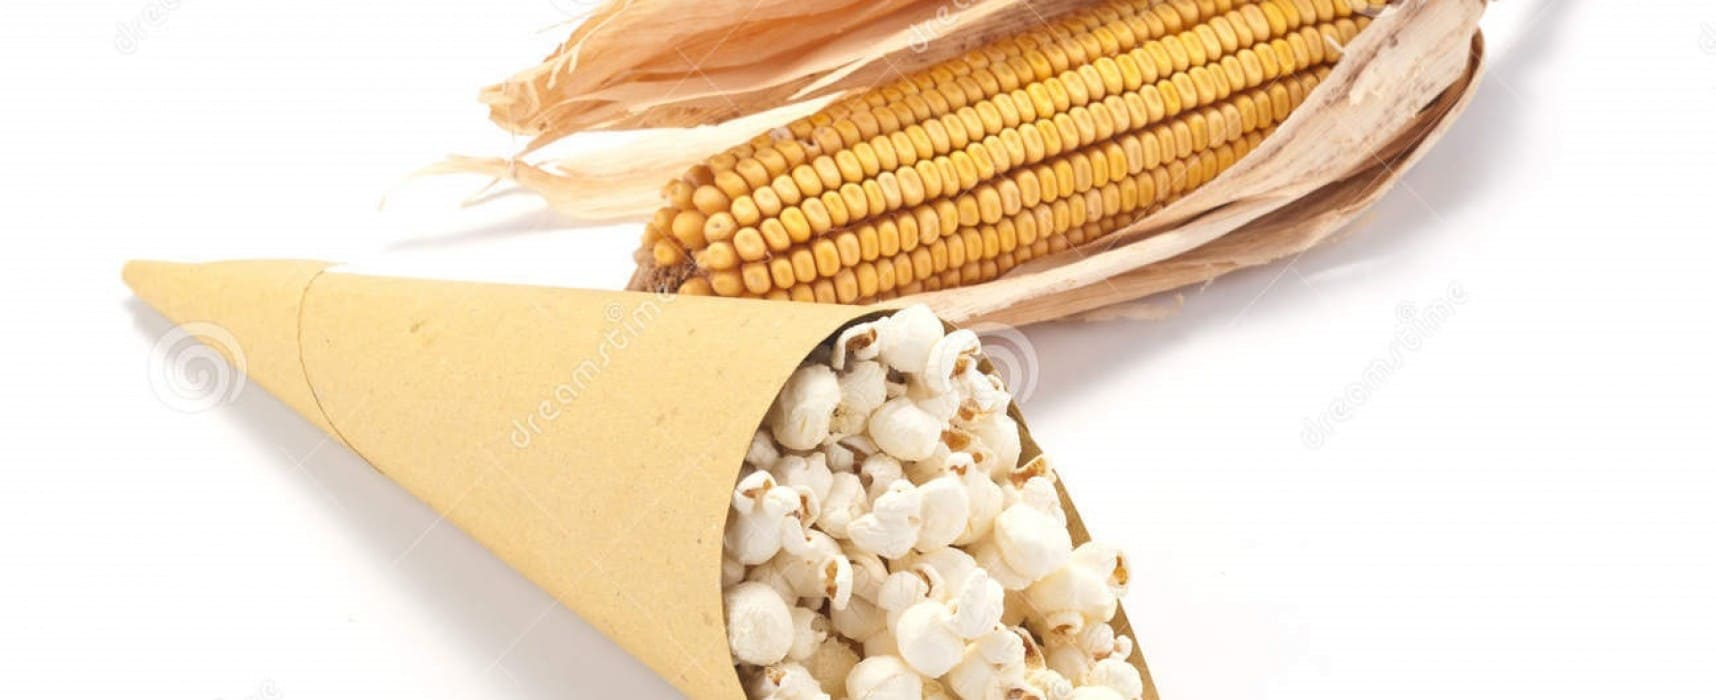 The Pop corn debate